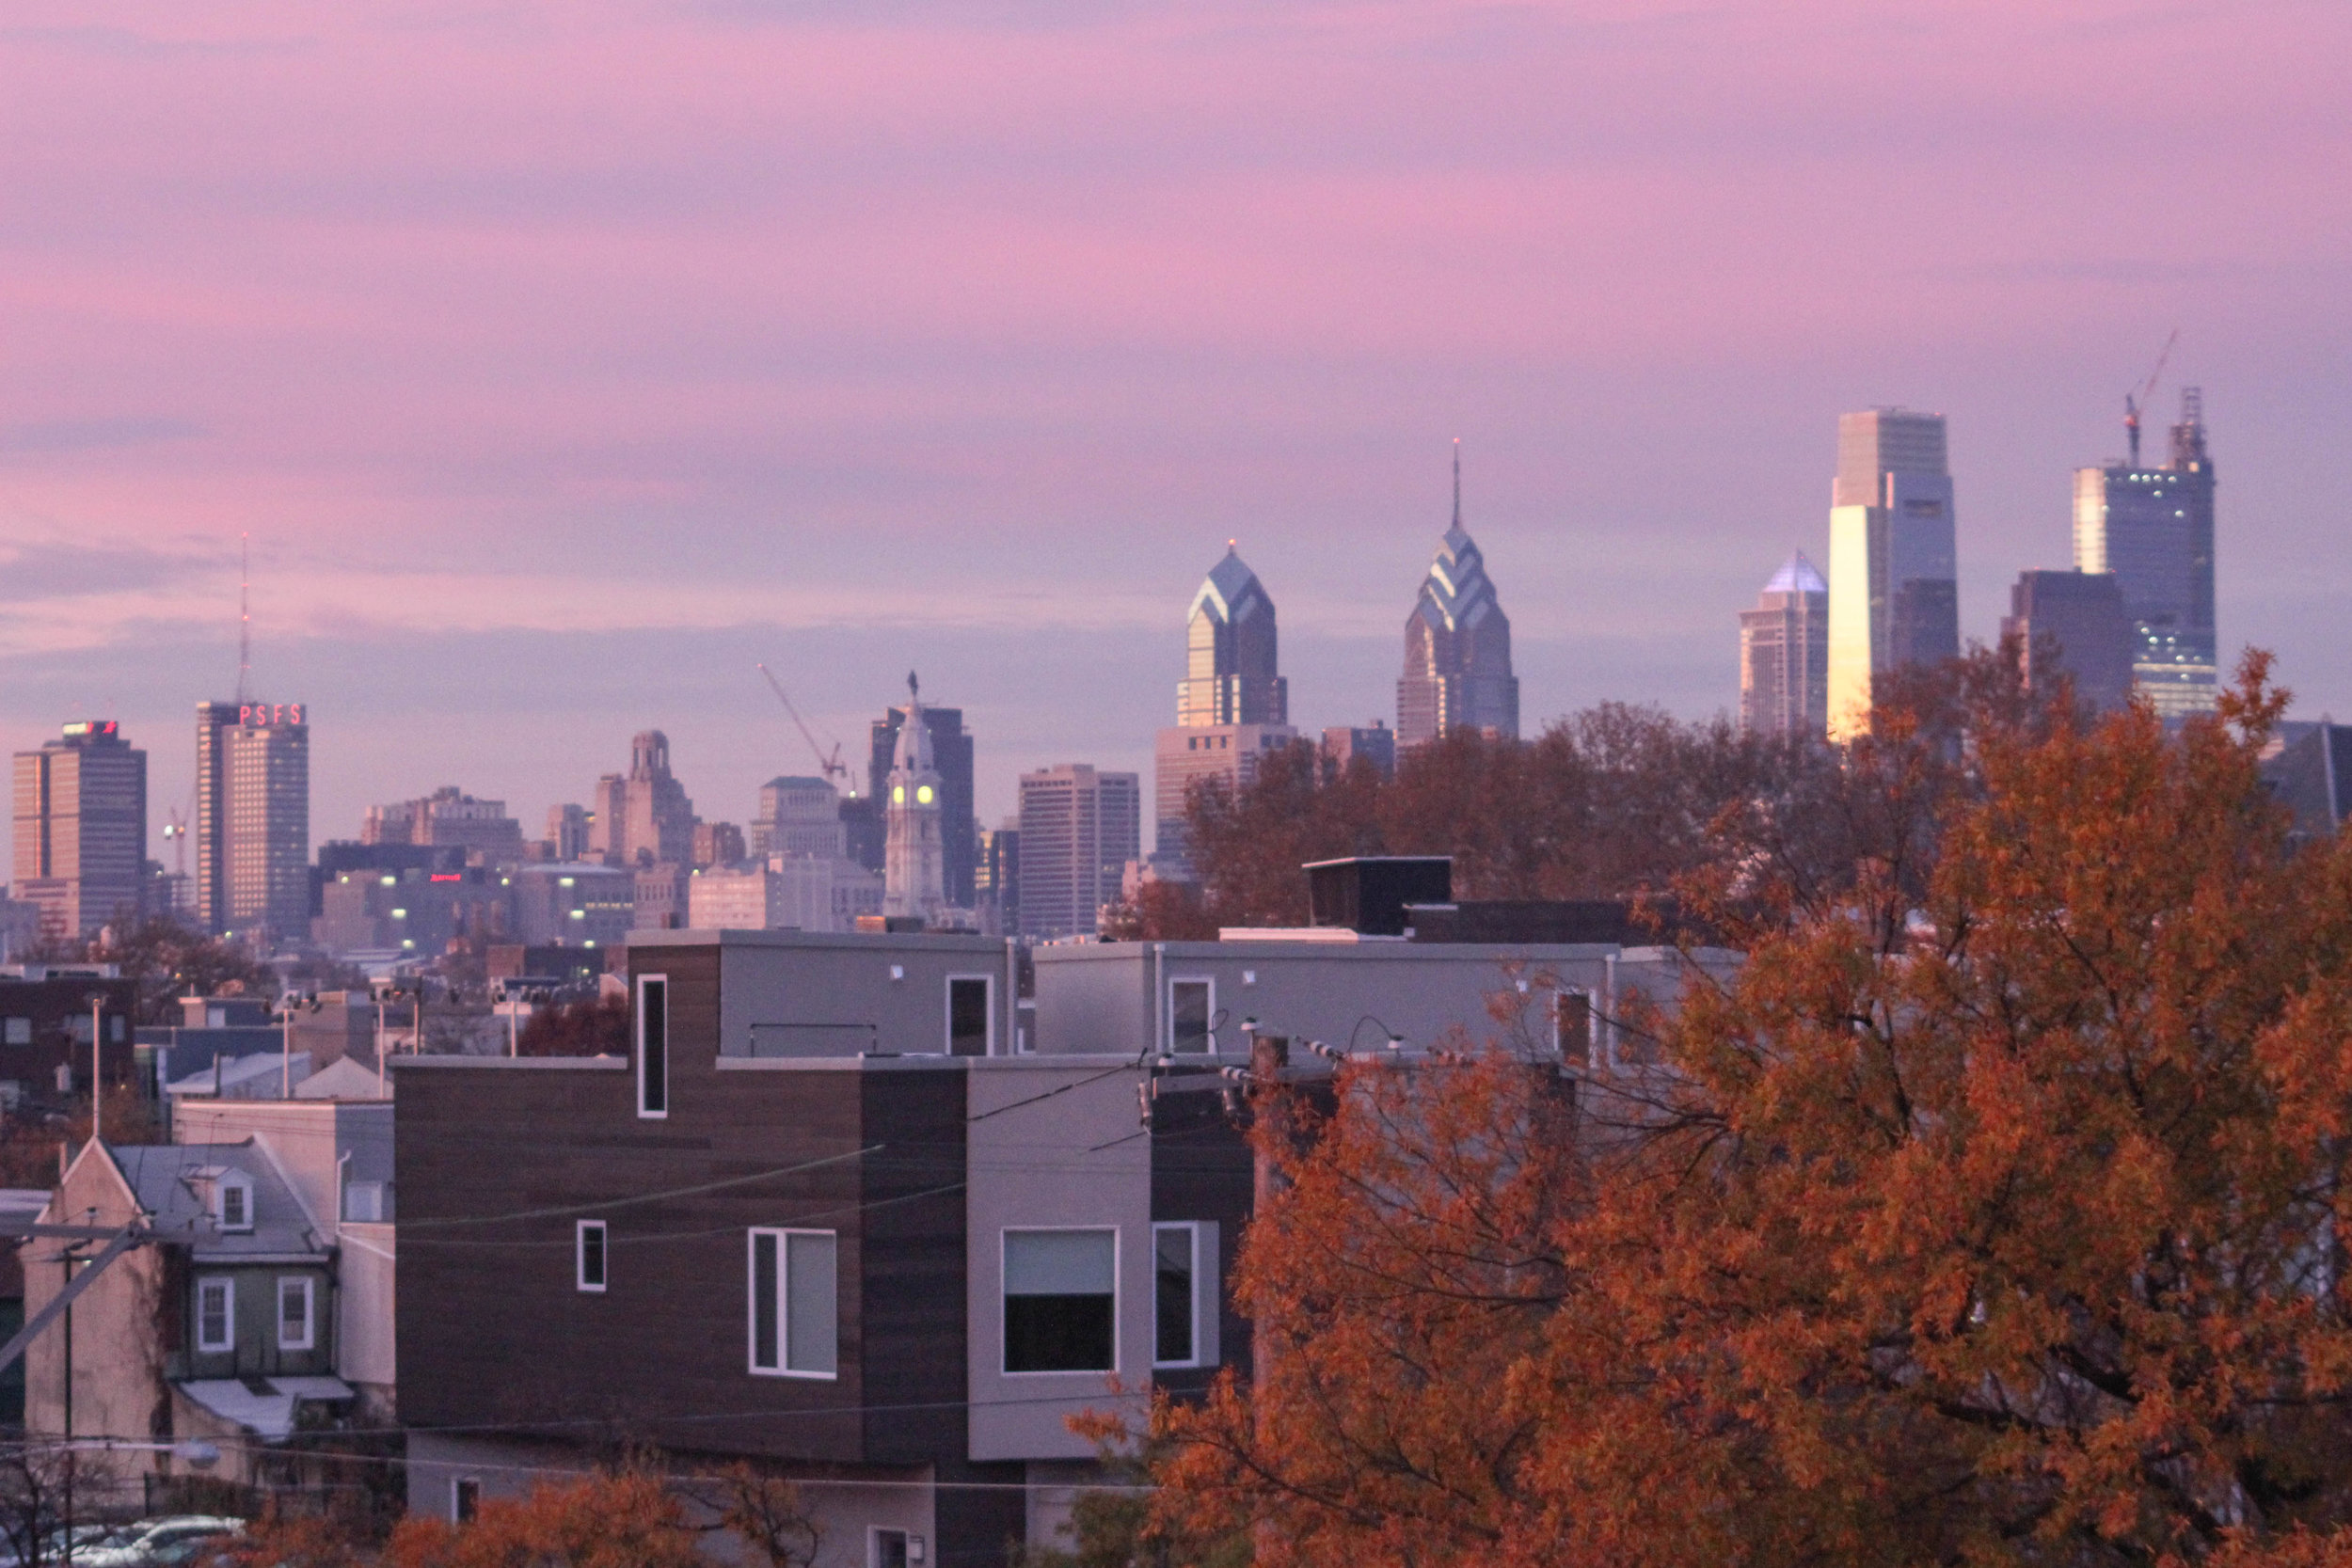 Philly Cotton Candy Sky.jpg